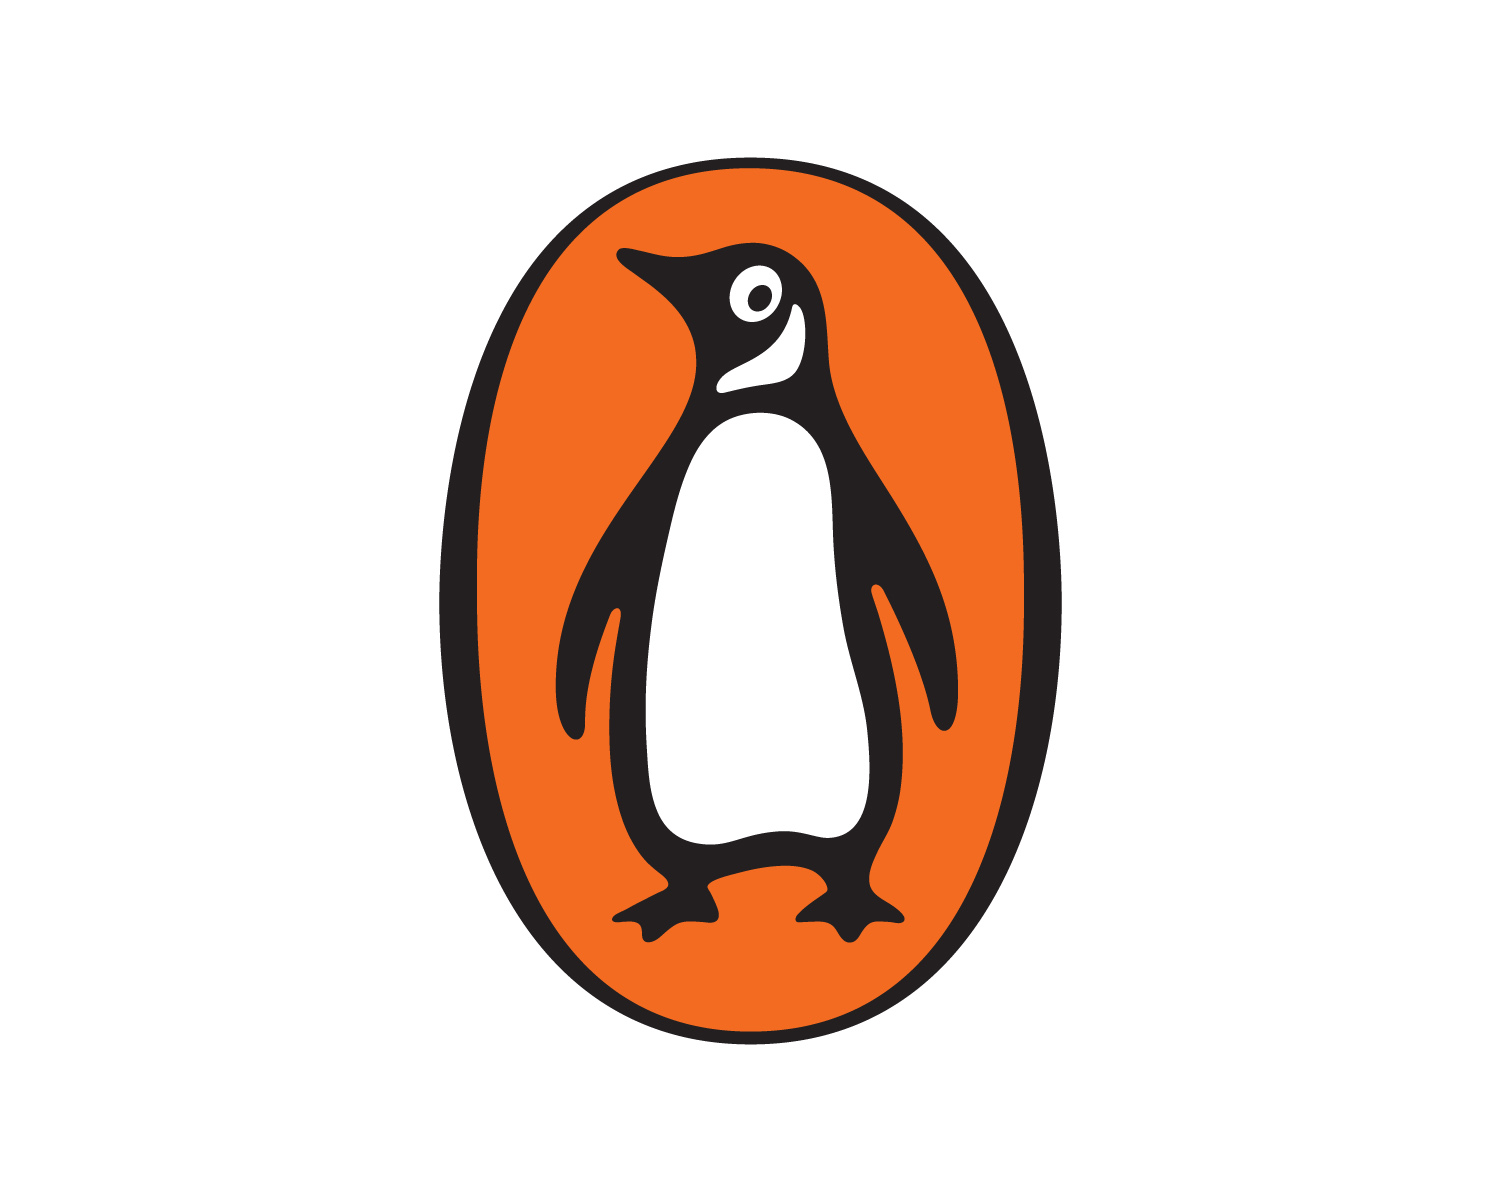 Penguin_Books_logo_color (1).jpg